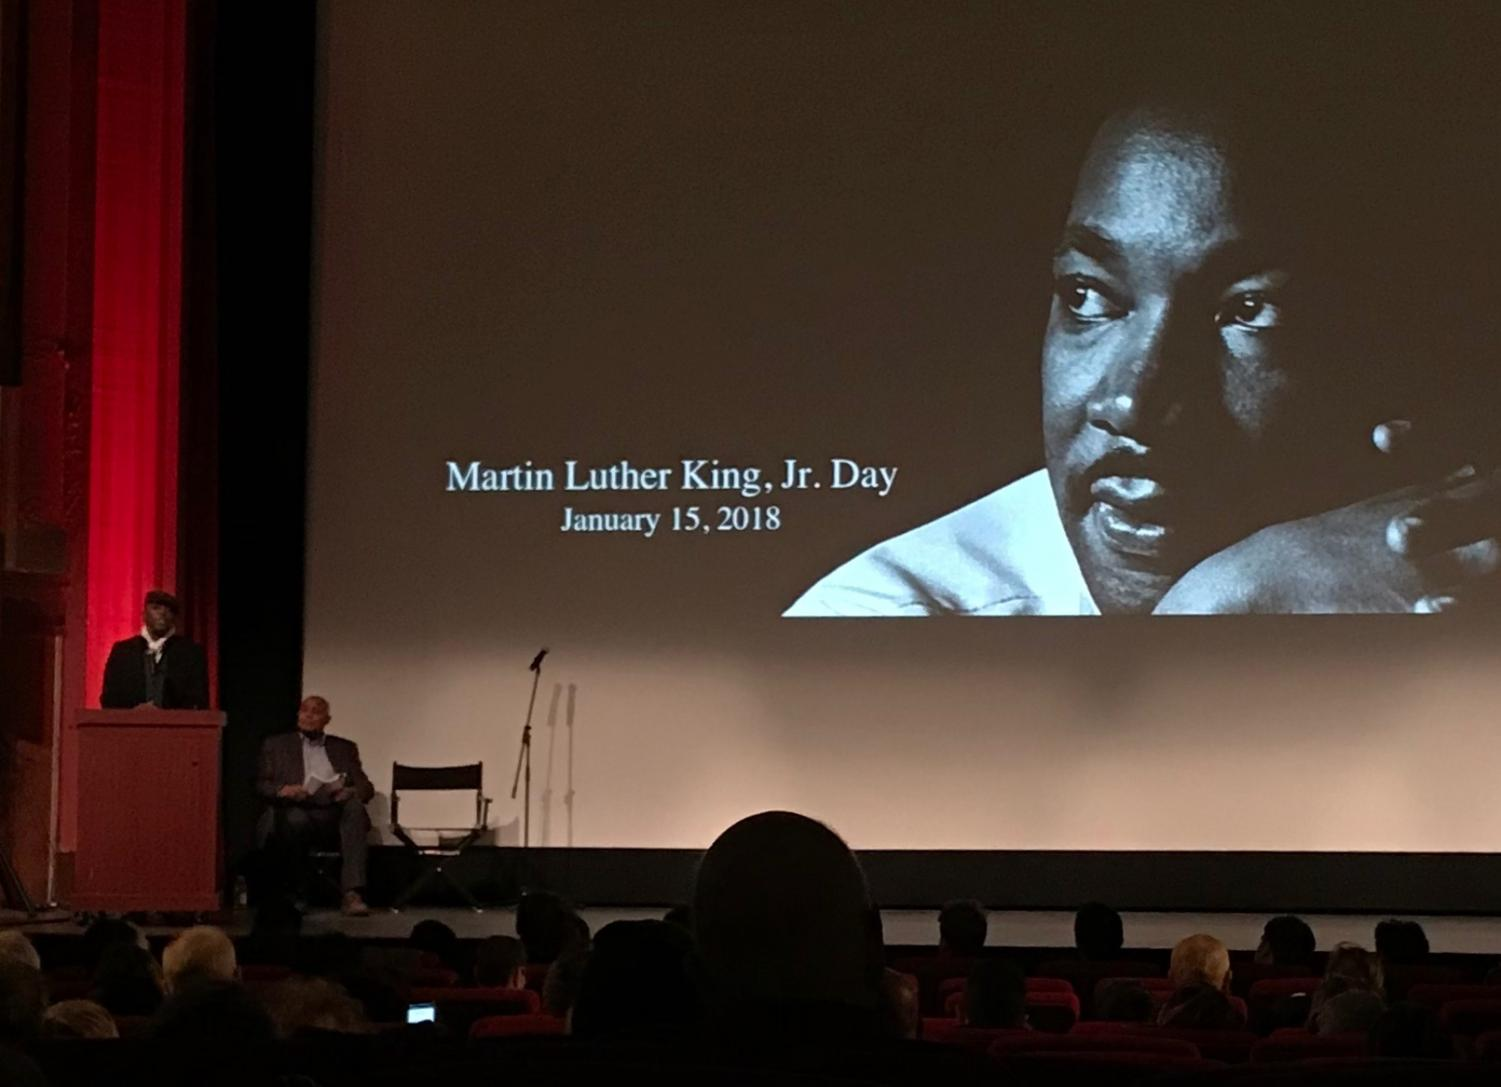 The iconic photo of Dr. King presides over the Coolidge Corner Theater as speakers prepare their remarks. NATALIE JEW/SAGAMORE STAFF